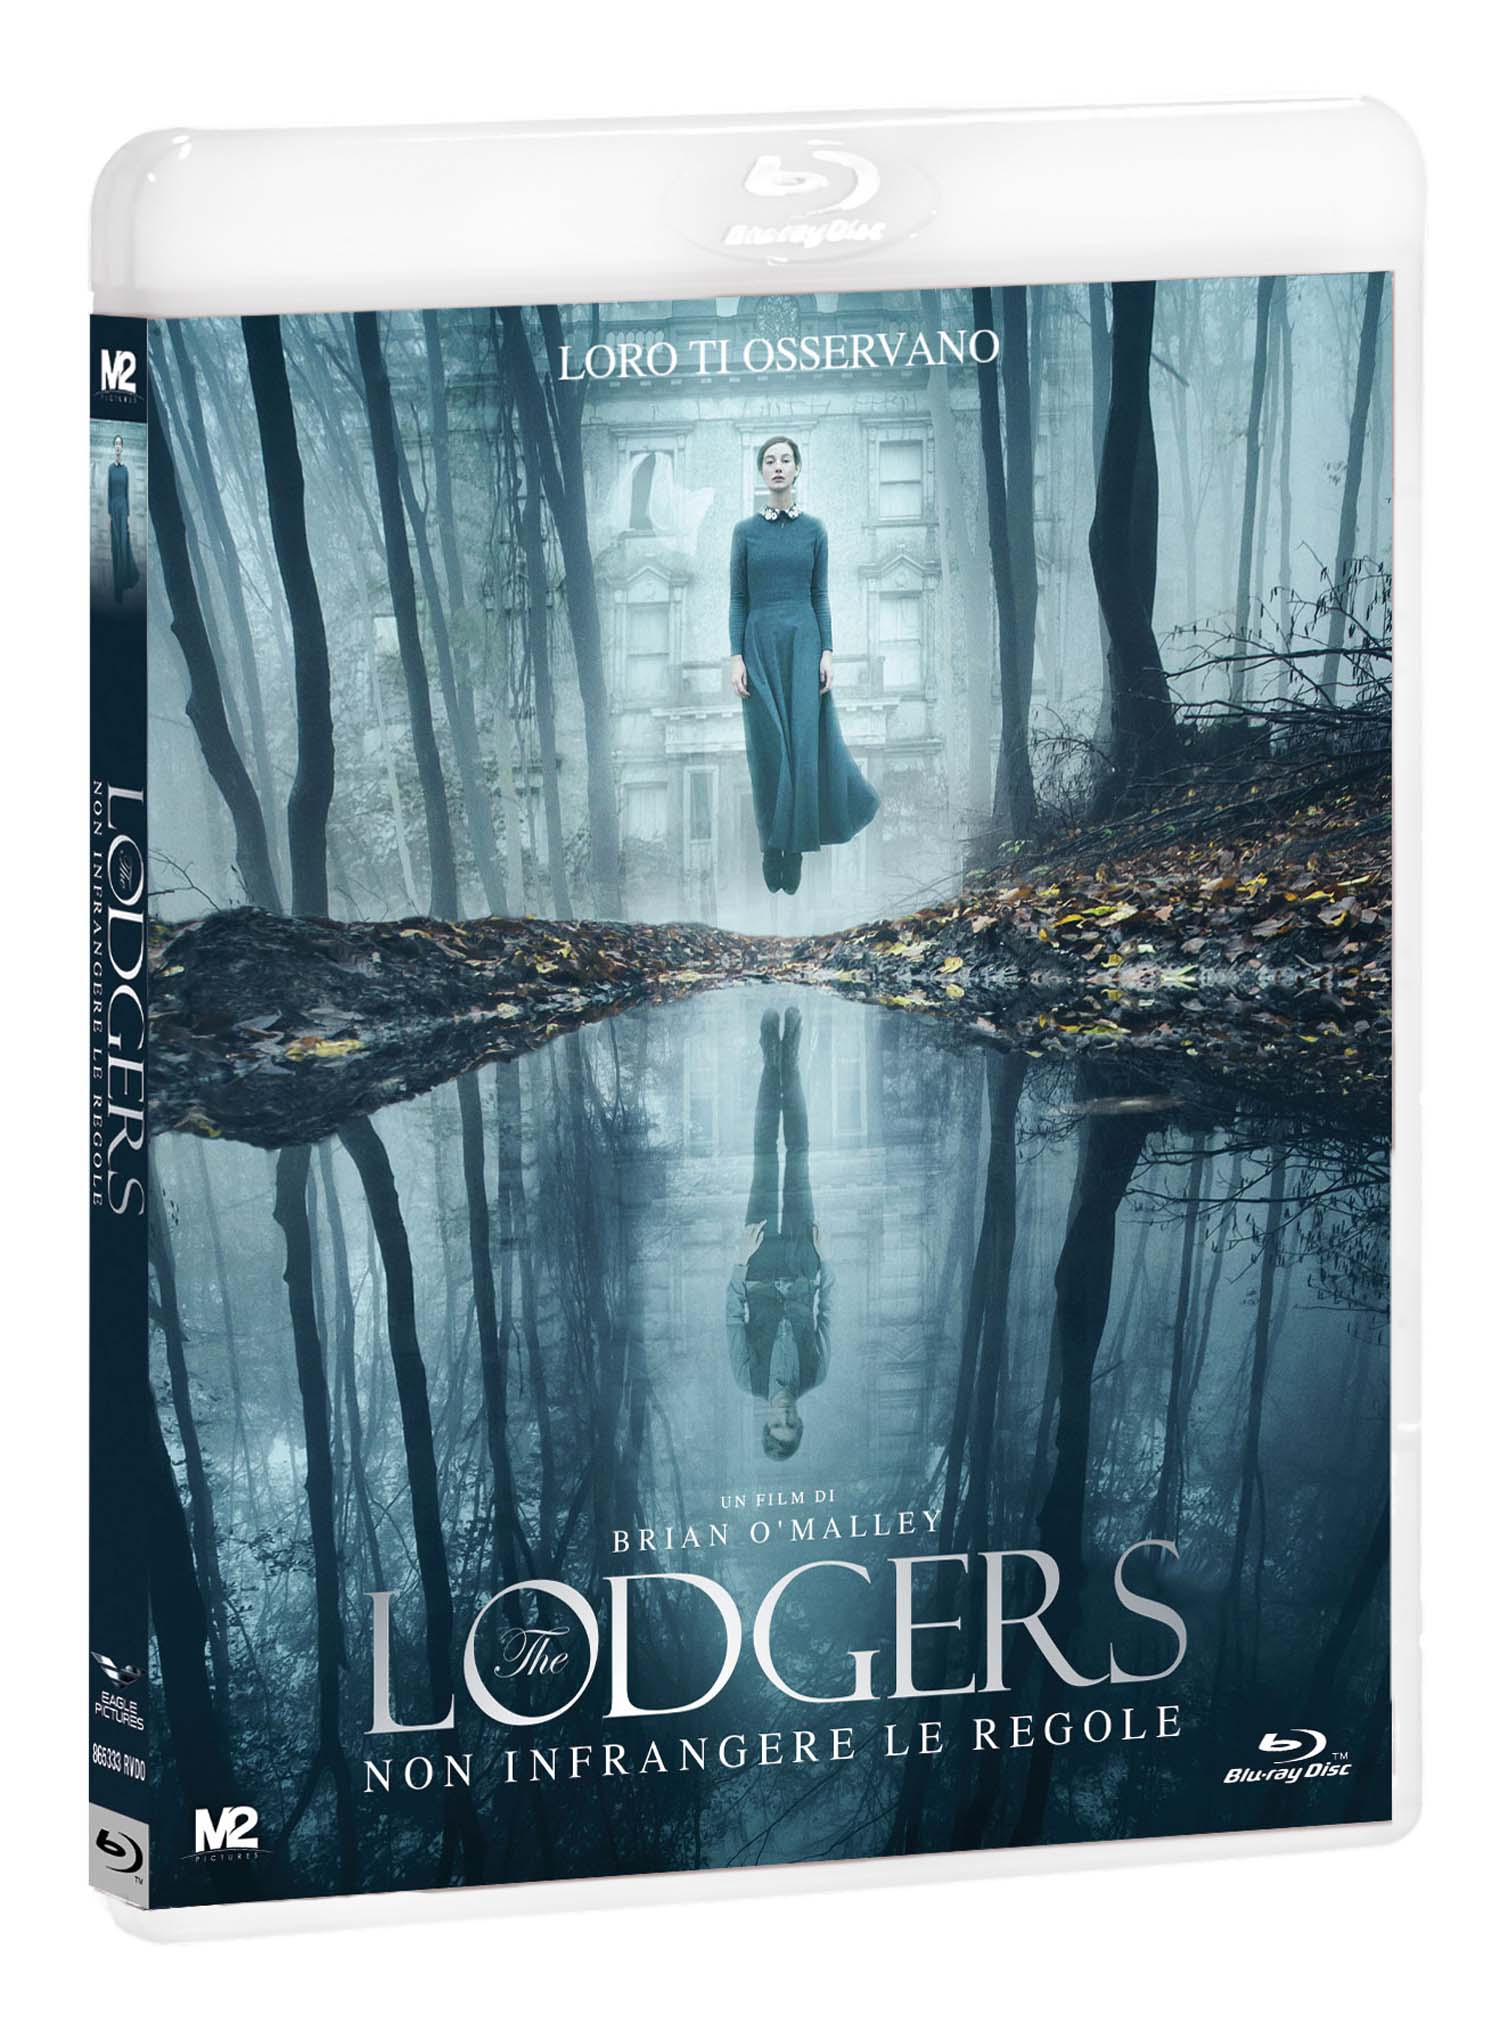 THE LODGERS - NON INFRANGERE LE REGOLE - BLU RAY